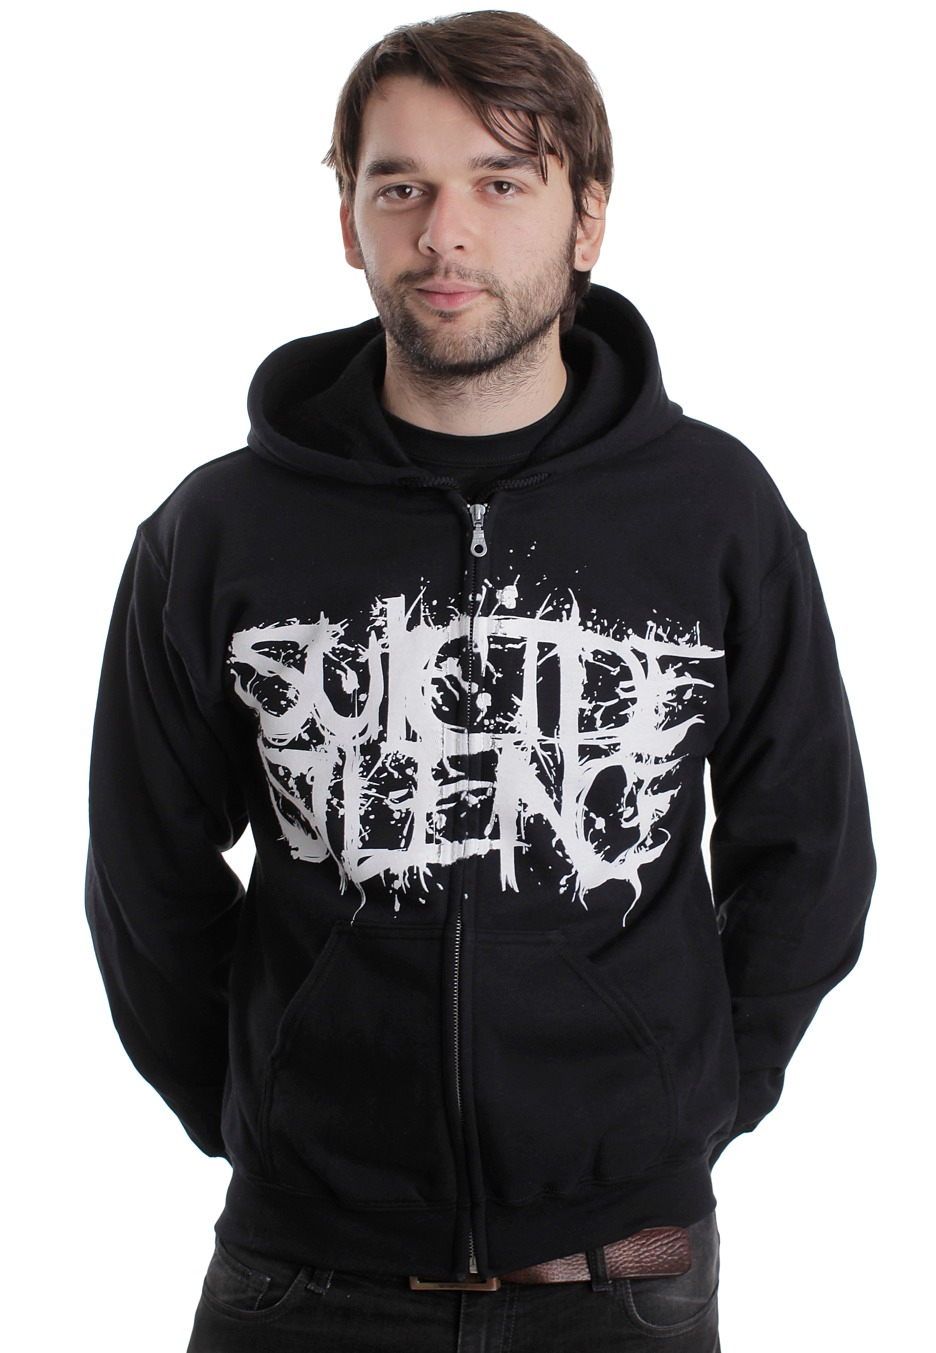 Suicide silence pull the trigger hoodie